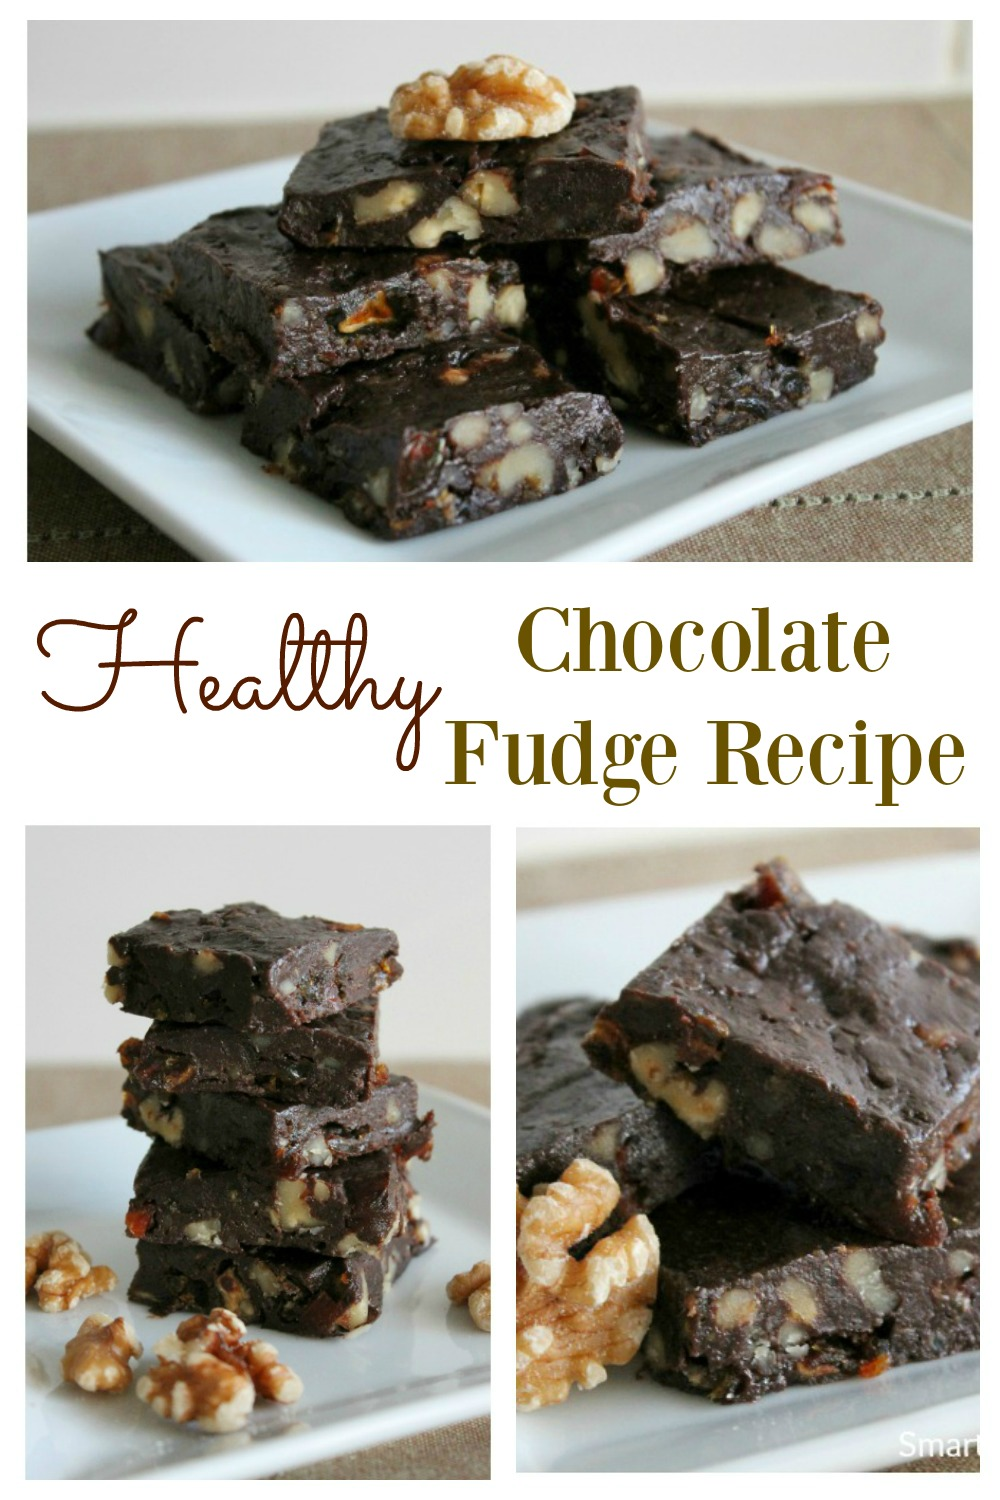 A simple healthy chocolate fudge recipe. Despite being healthy, it's rich and decadent.  It's easy to make, and tastes amazing. This is the best ever chocolate fudge that you can eat guilt free. The whole family will love it, that's if you want to share with the kids! Grab this recipe now or regret it.